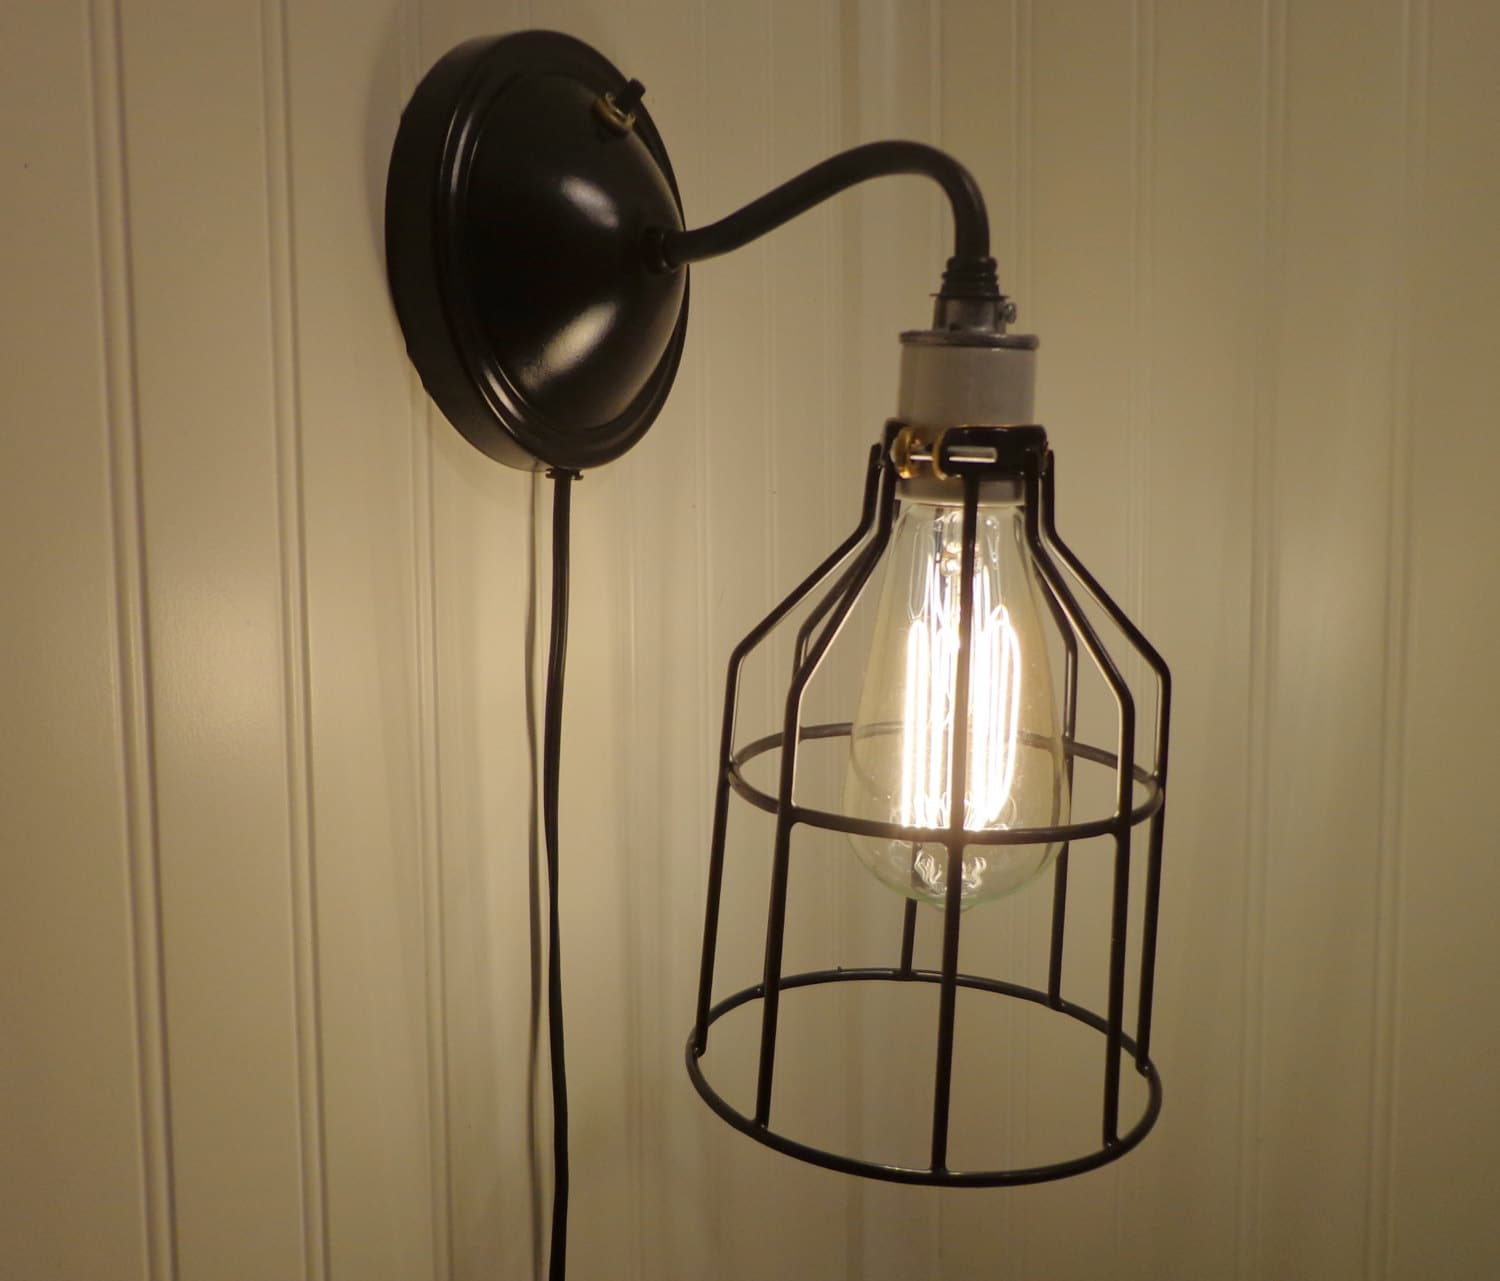 lighting historic sconce industrial bronze globe light products of shades bath olde